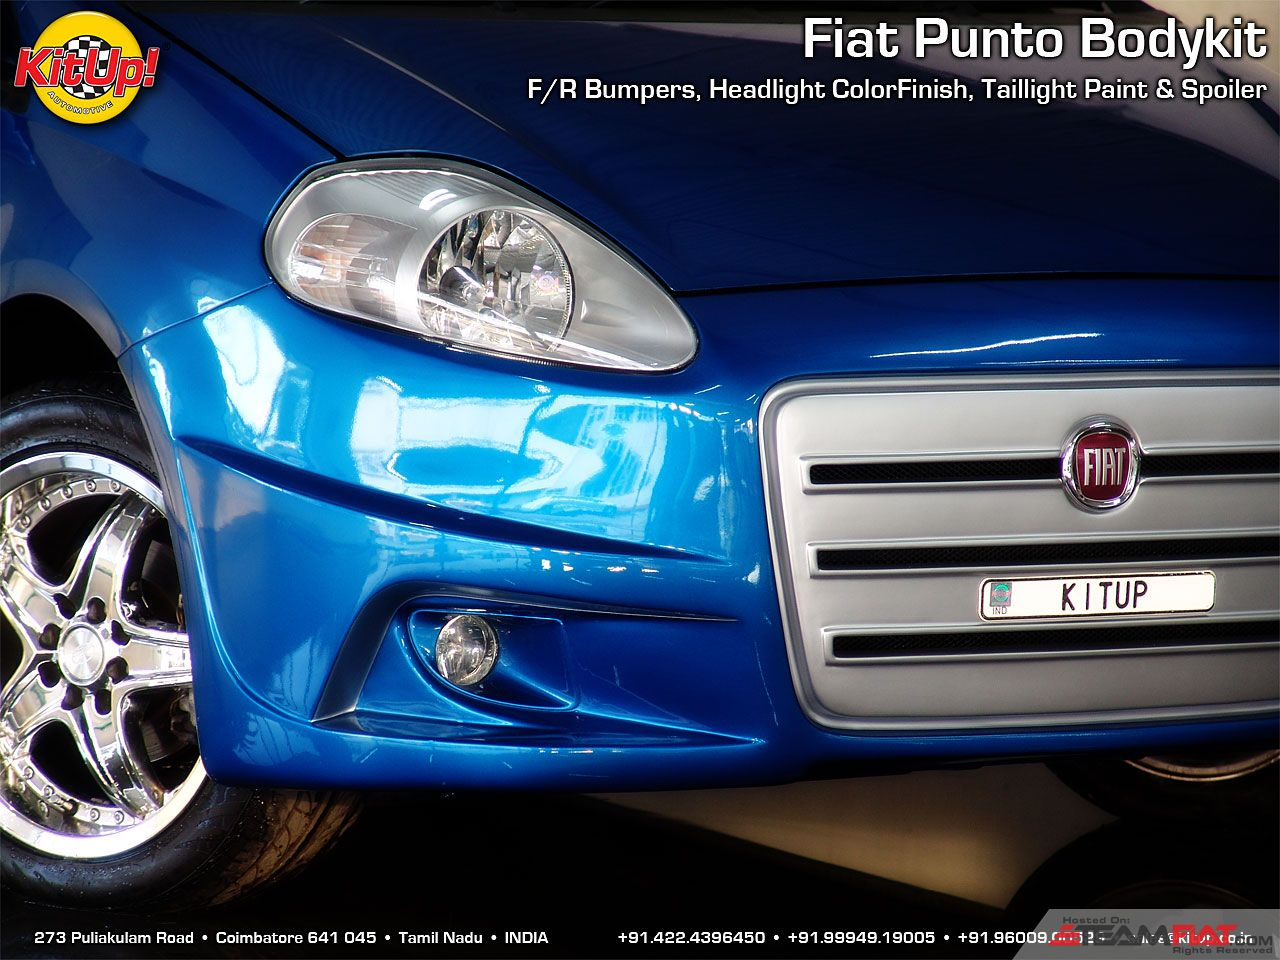 Punto-Bodykit1-3of8.jpg